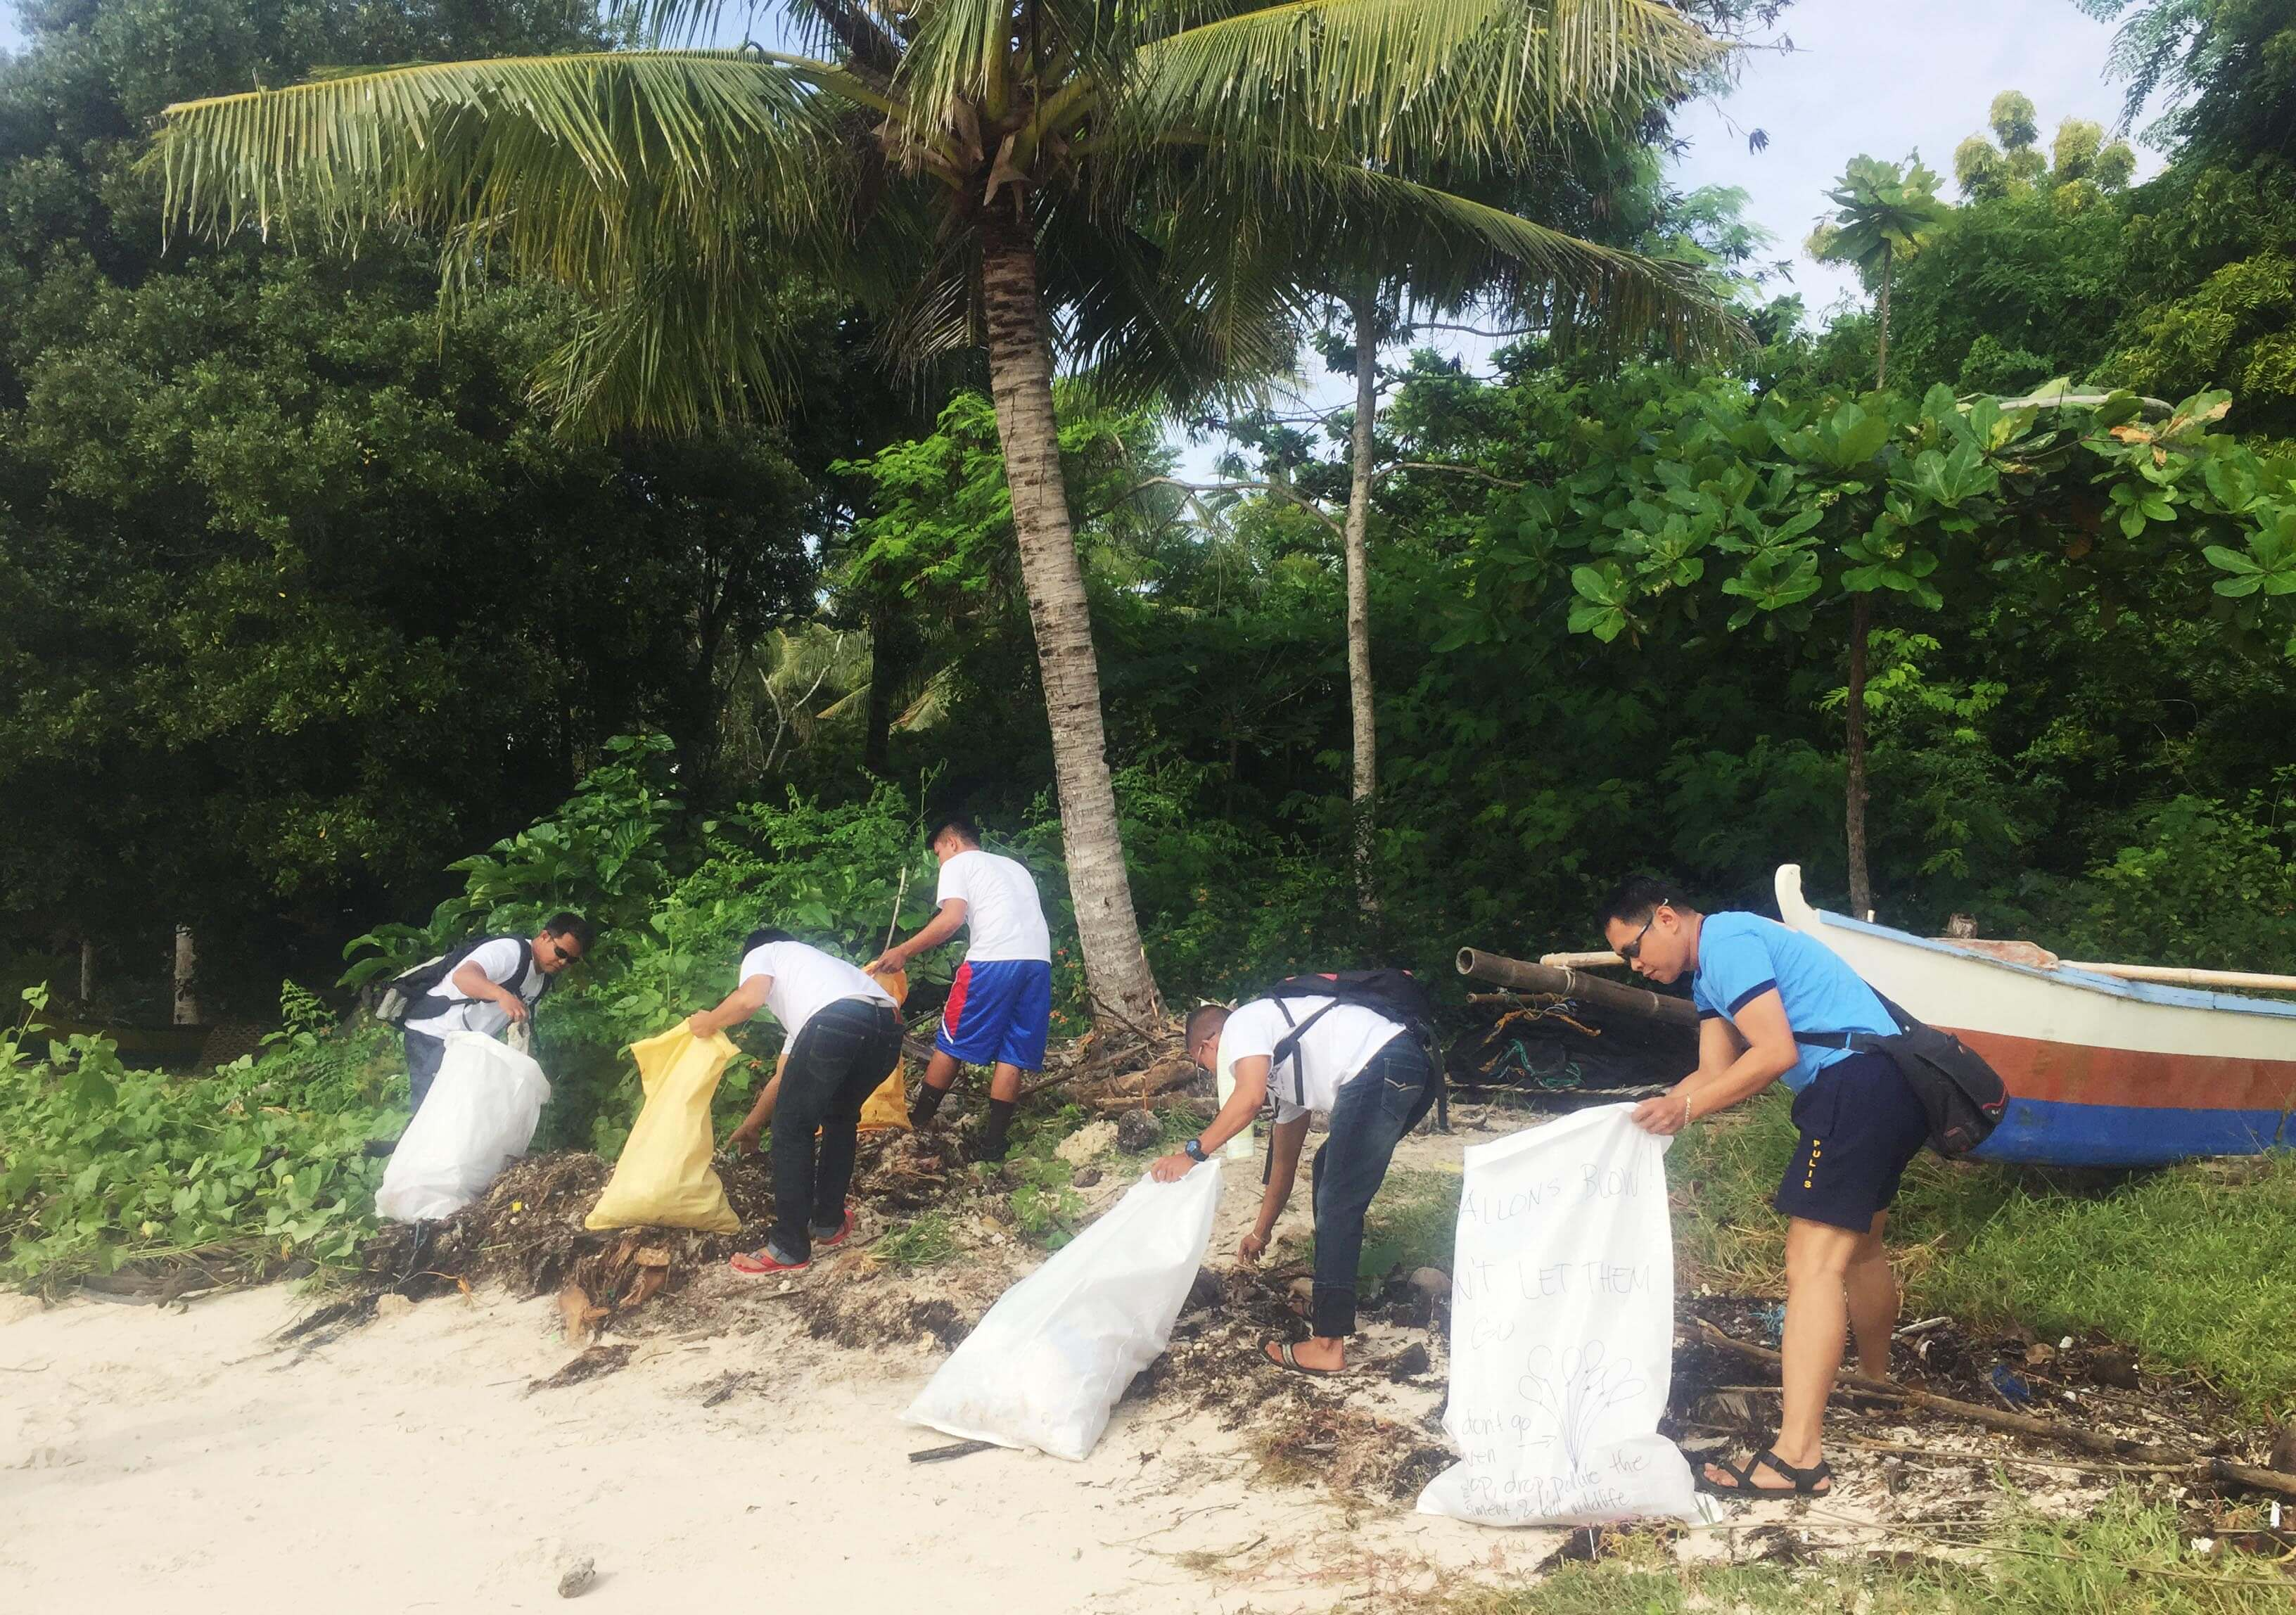 Volunteers from Plastic Free Bohol together with Kapuluan are teaming up to clean up Bohol beach